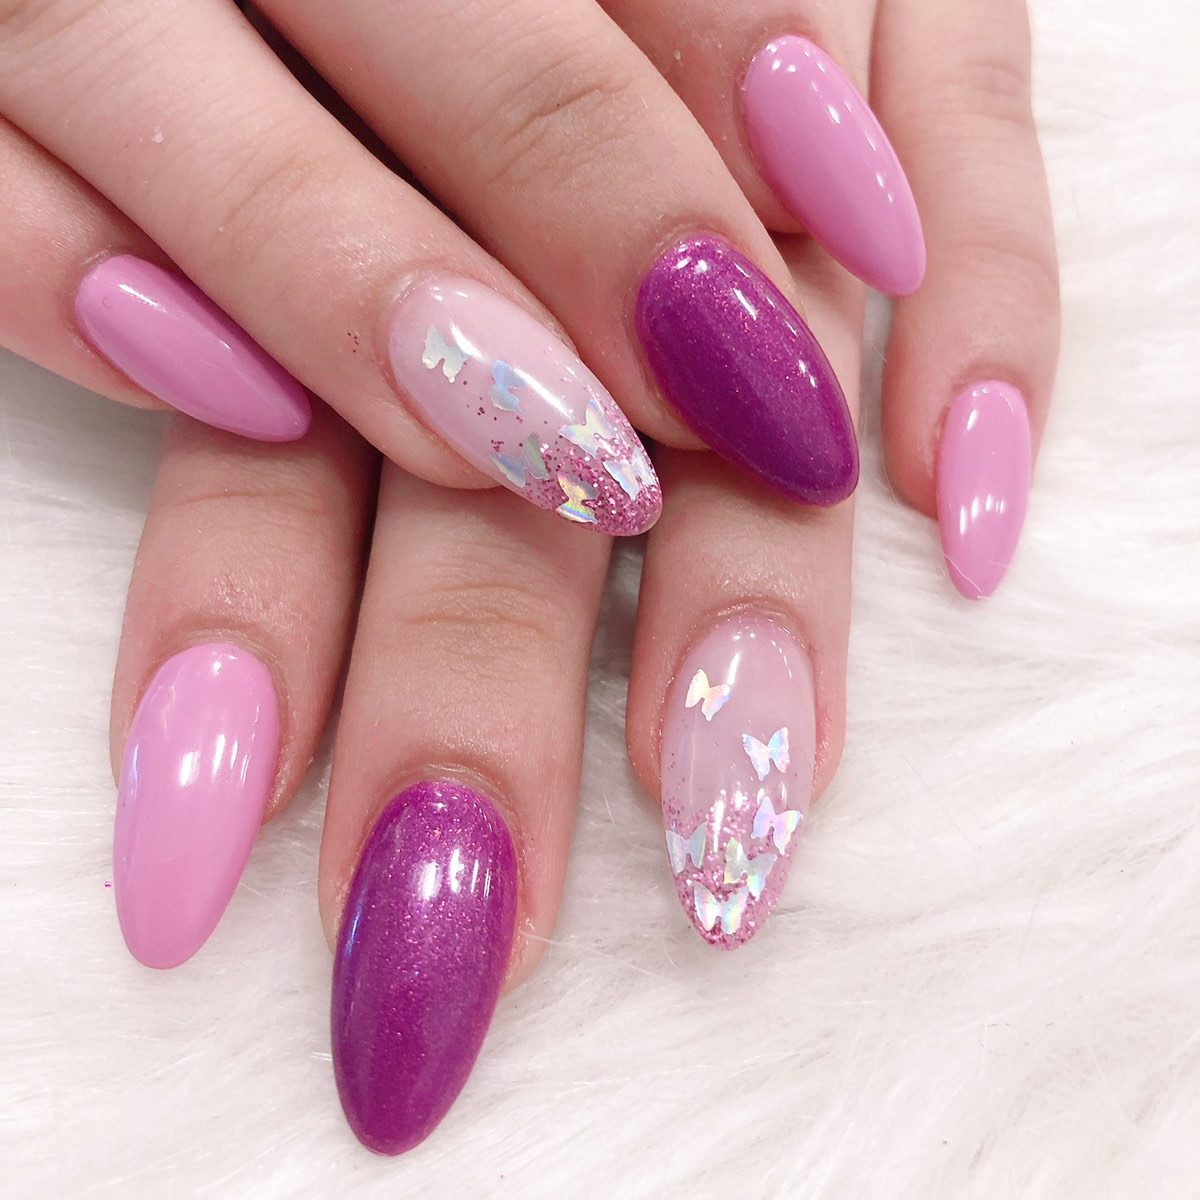 oval shaped acrylic nails with pink design with glitters